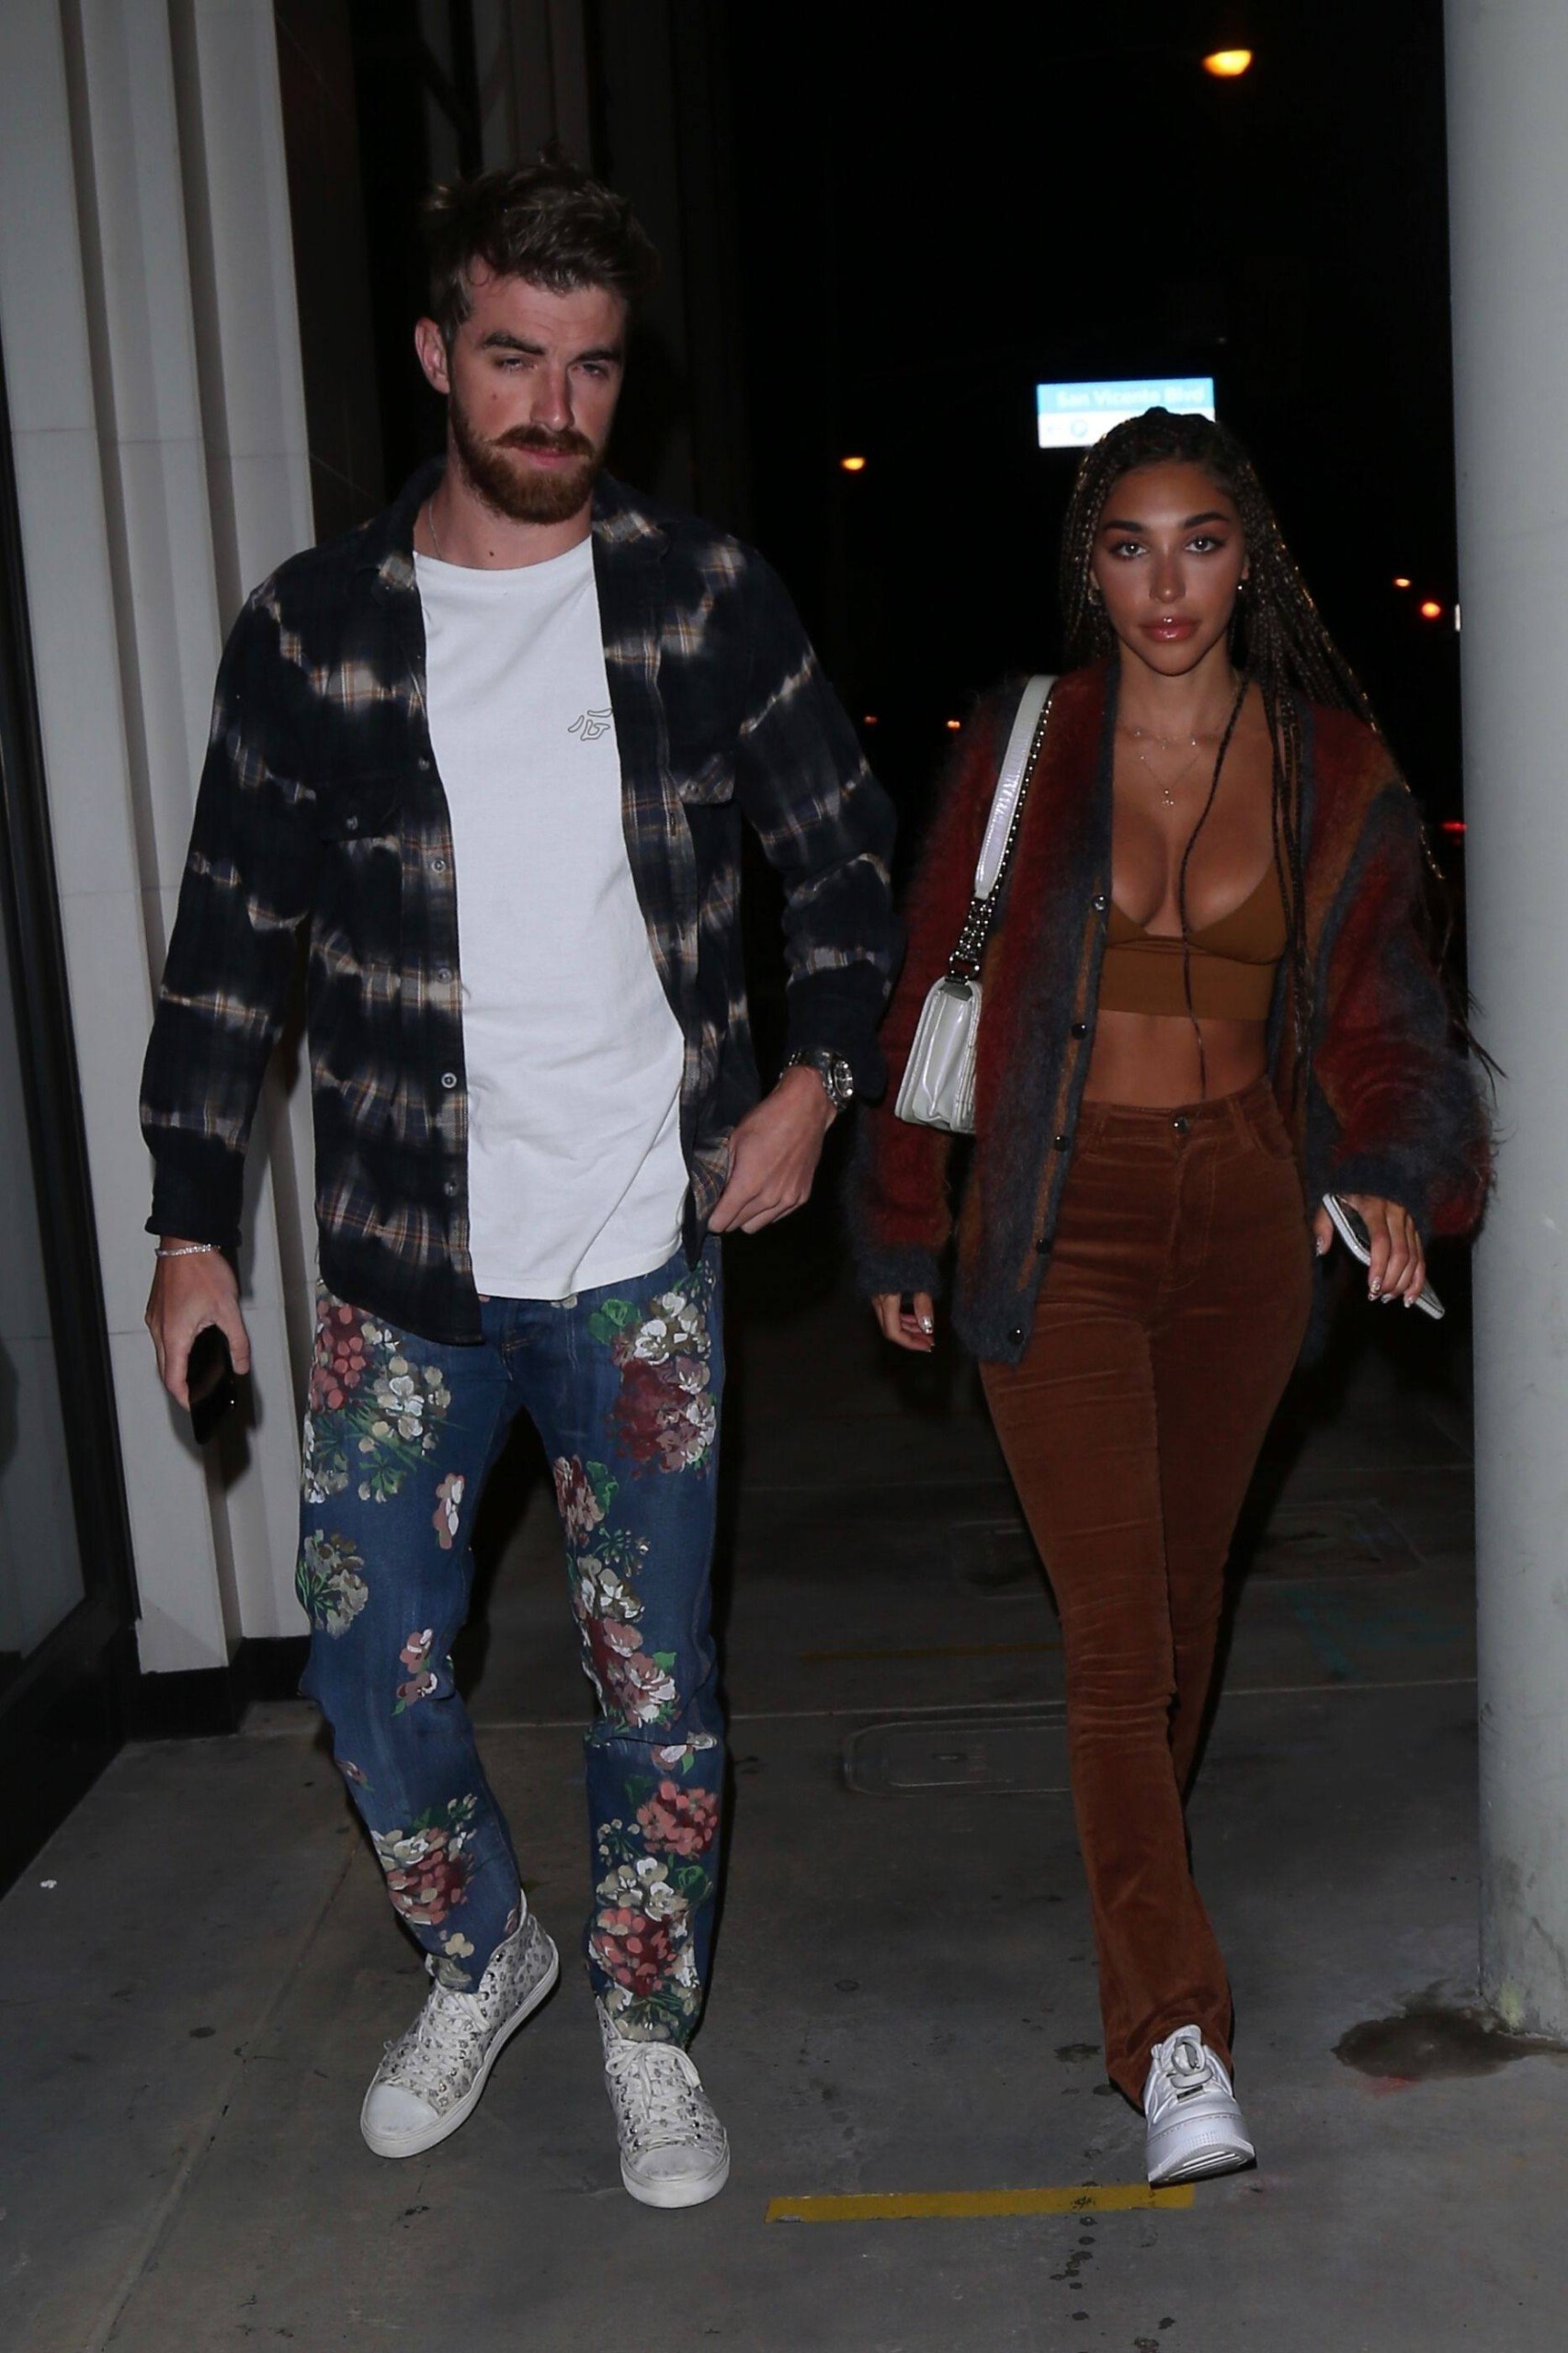 Chantel Jeffries – Sexy Boobs In Big Cleavage At Catch Restaurant In West Hollywood 0002